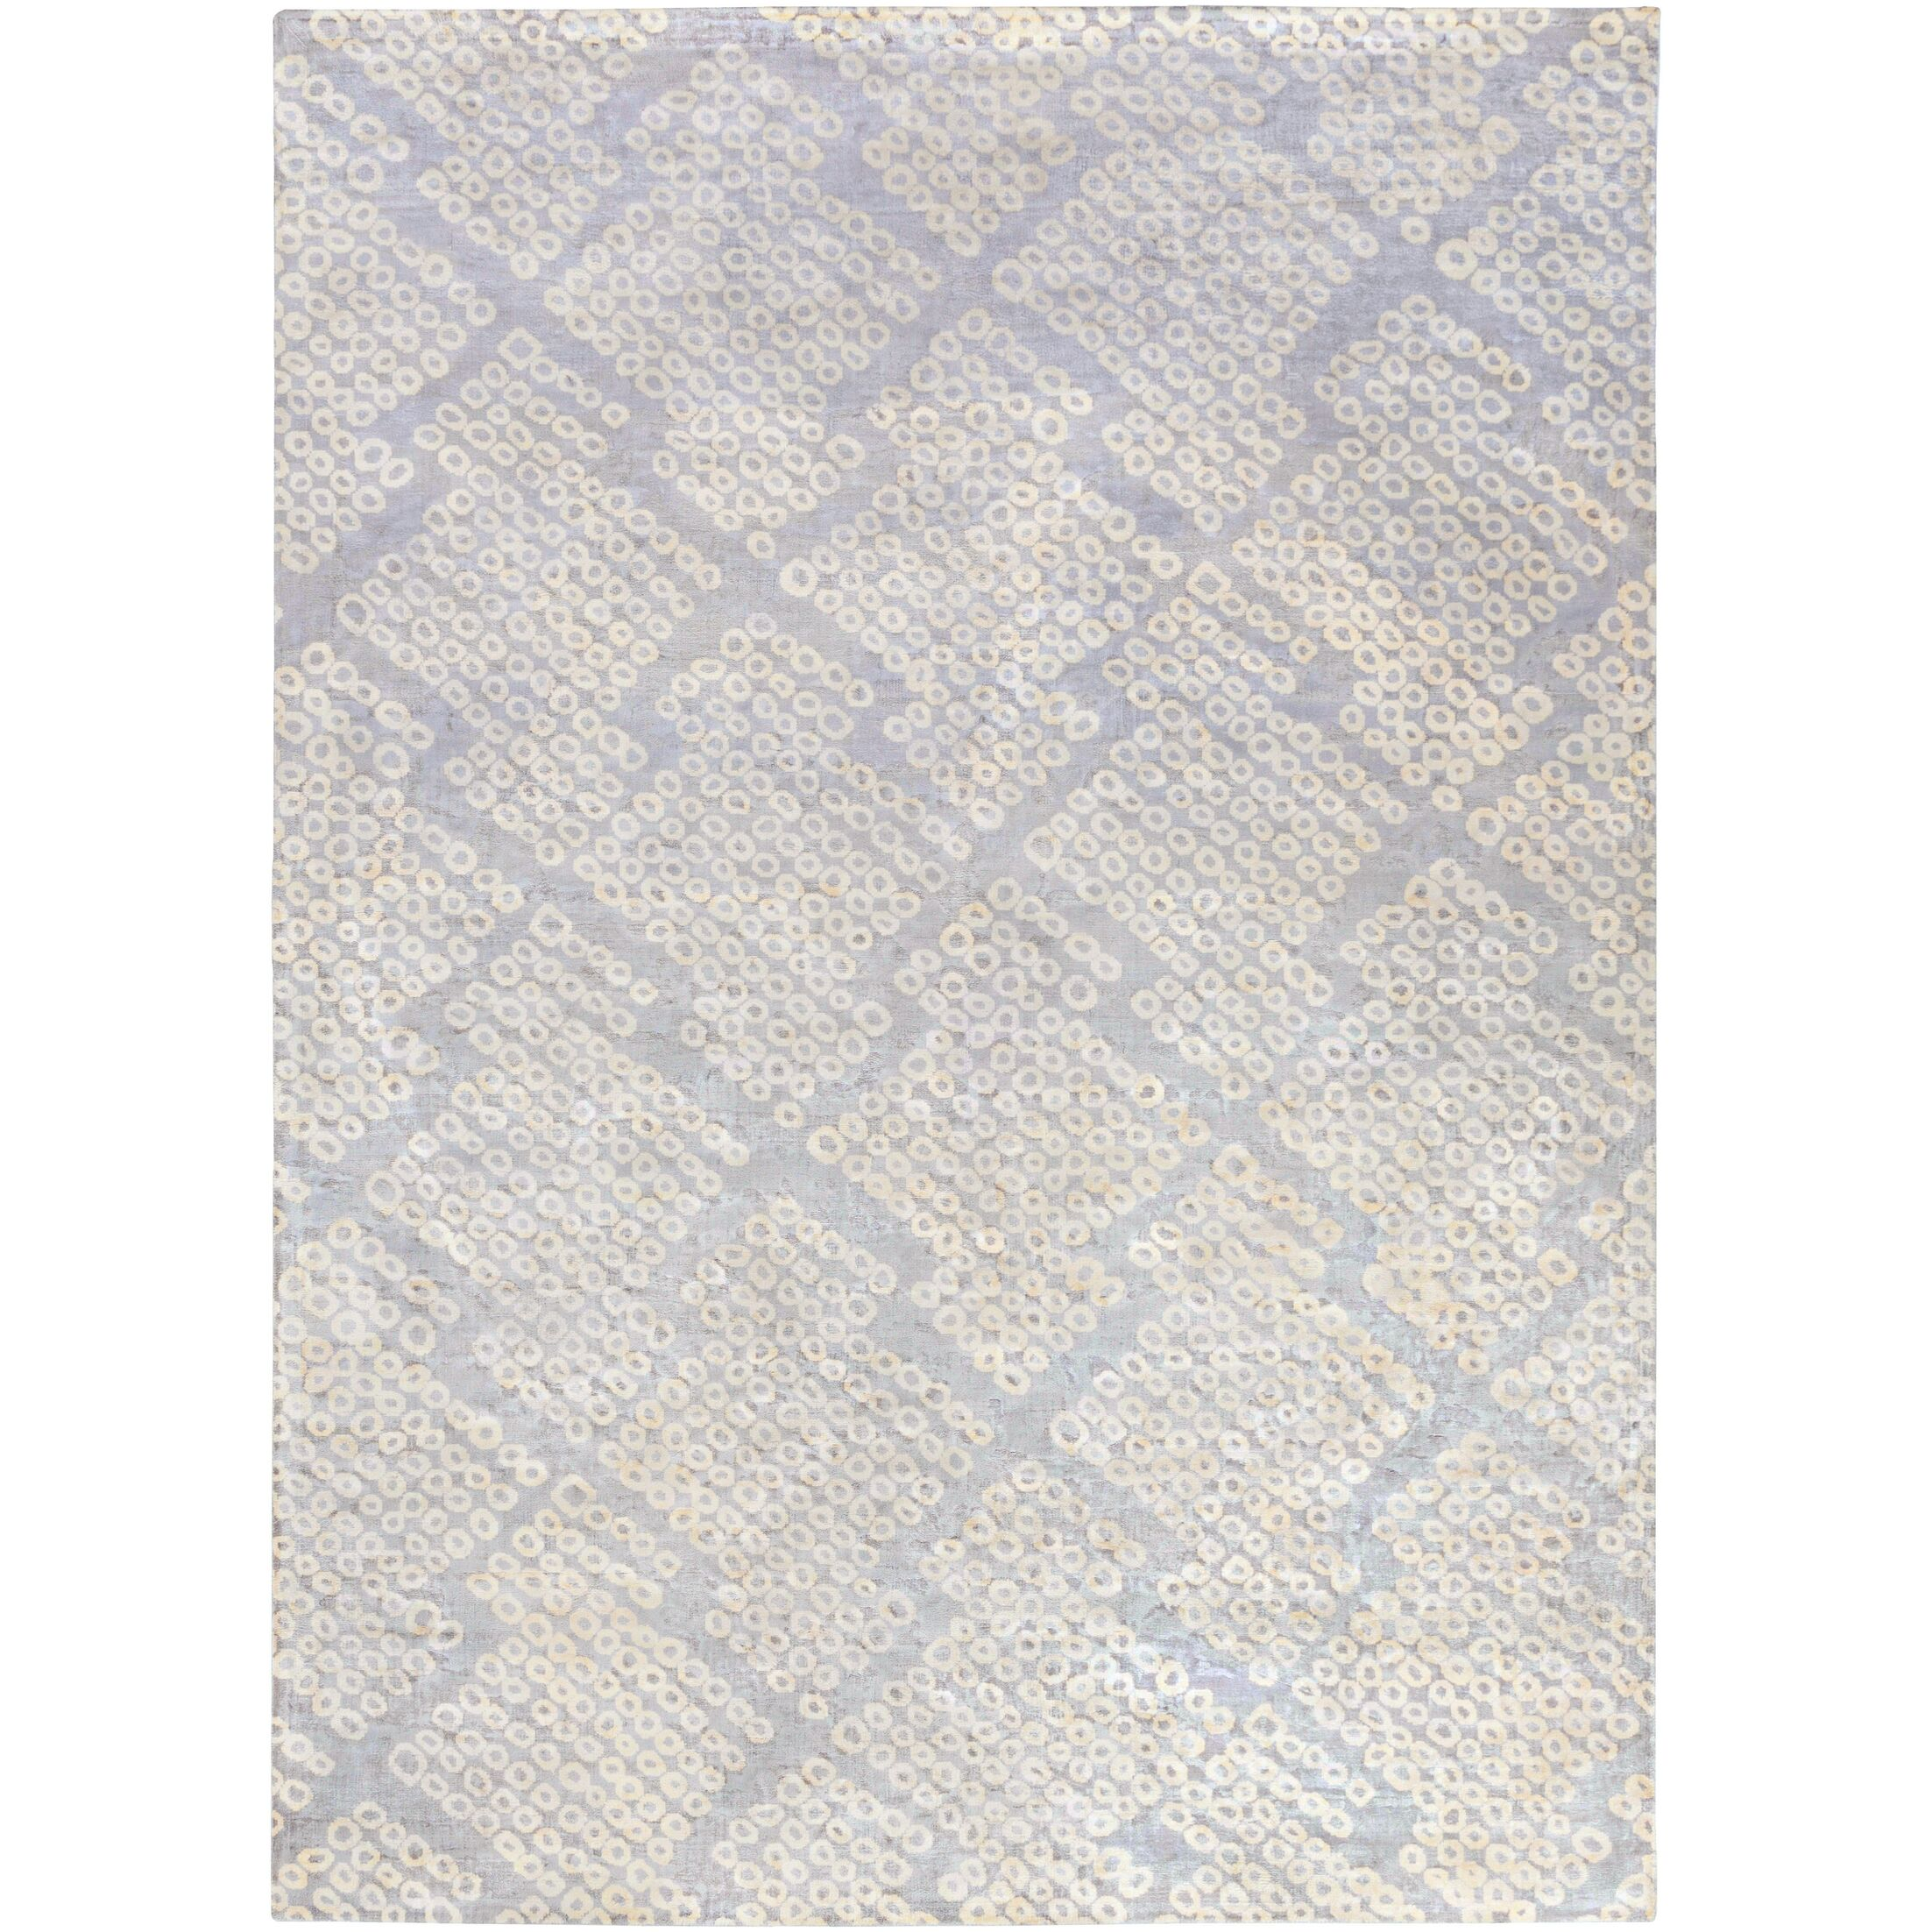 Villa Court Hand-Loomed Blue Area Rug Rug Size: Rectangle 8' x 11'